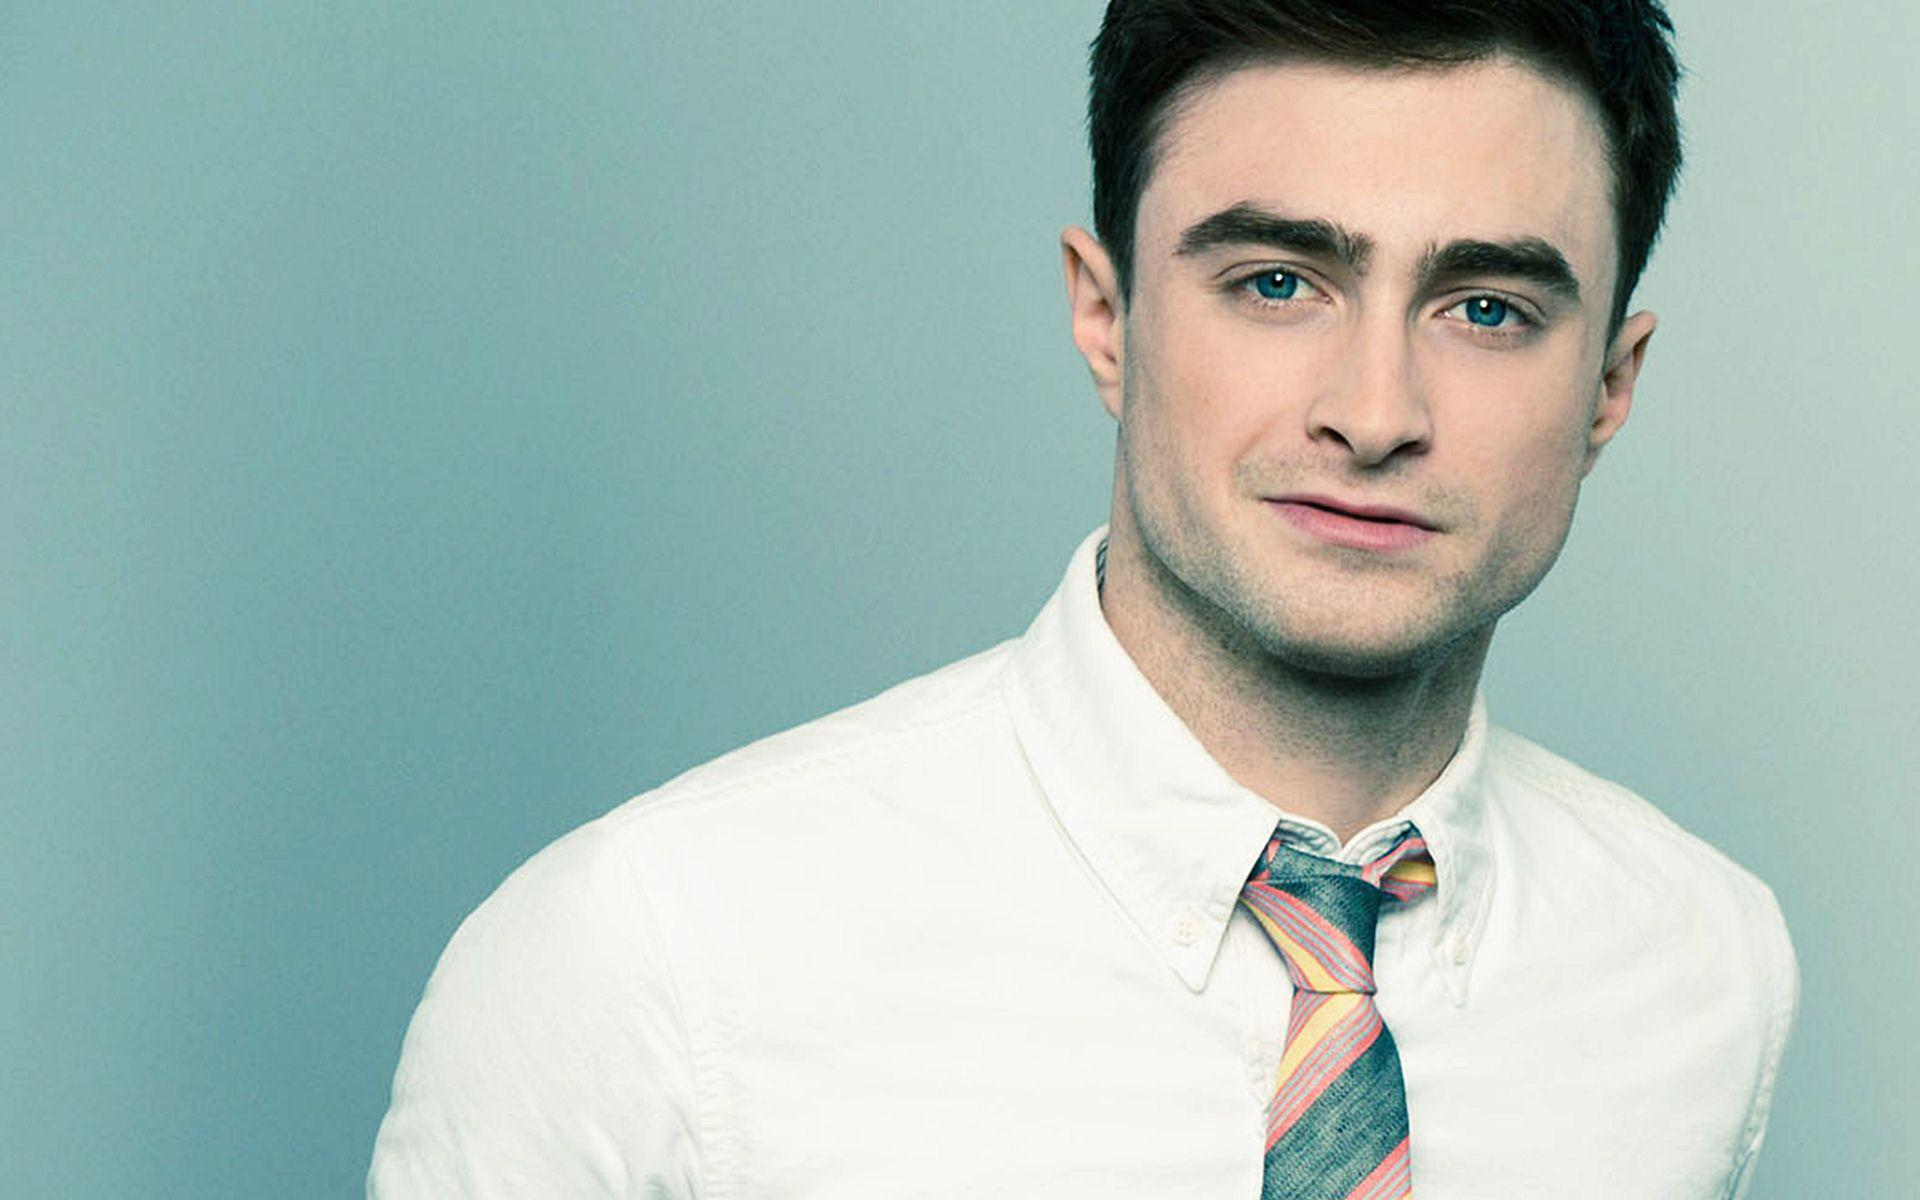 radcliffe hd wallpapers num2 - photo #11